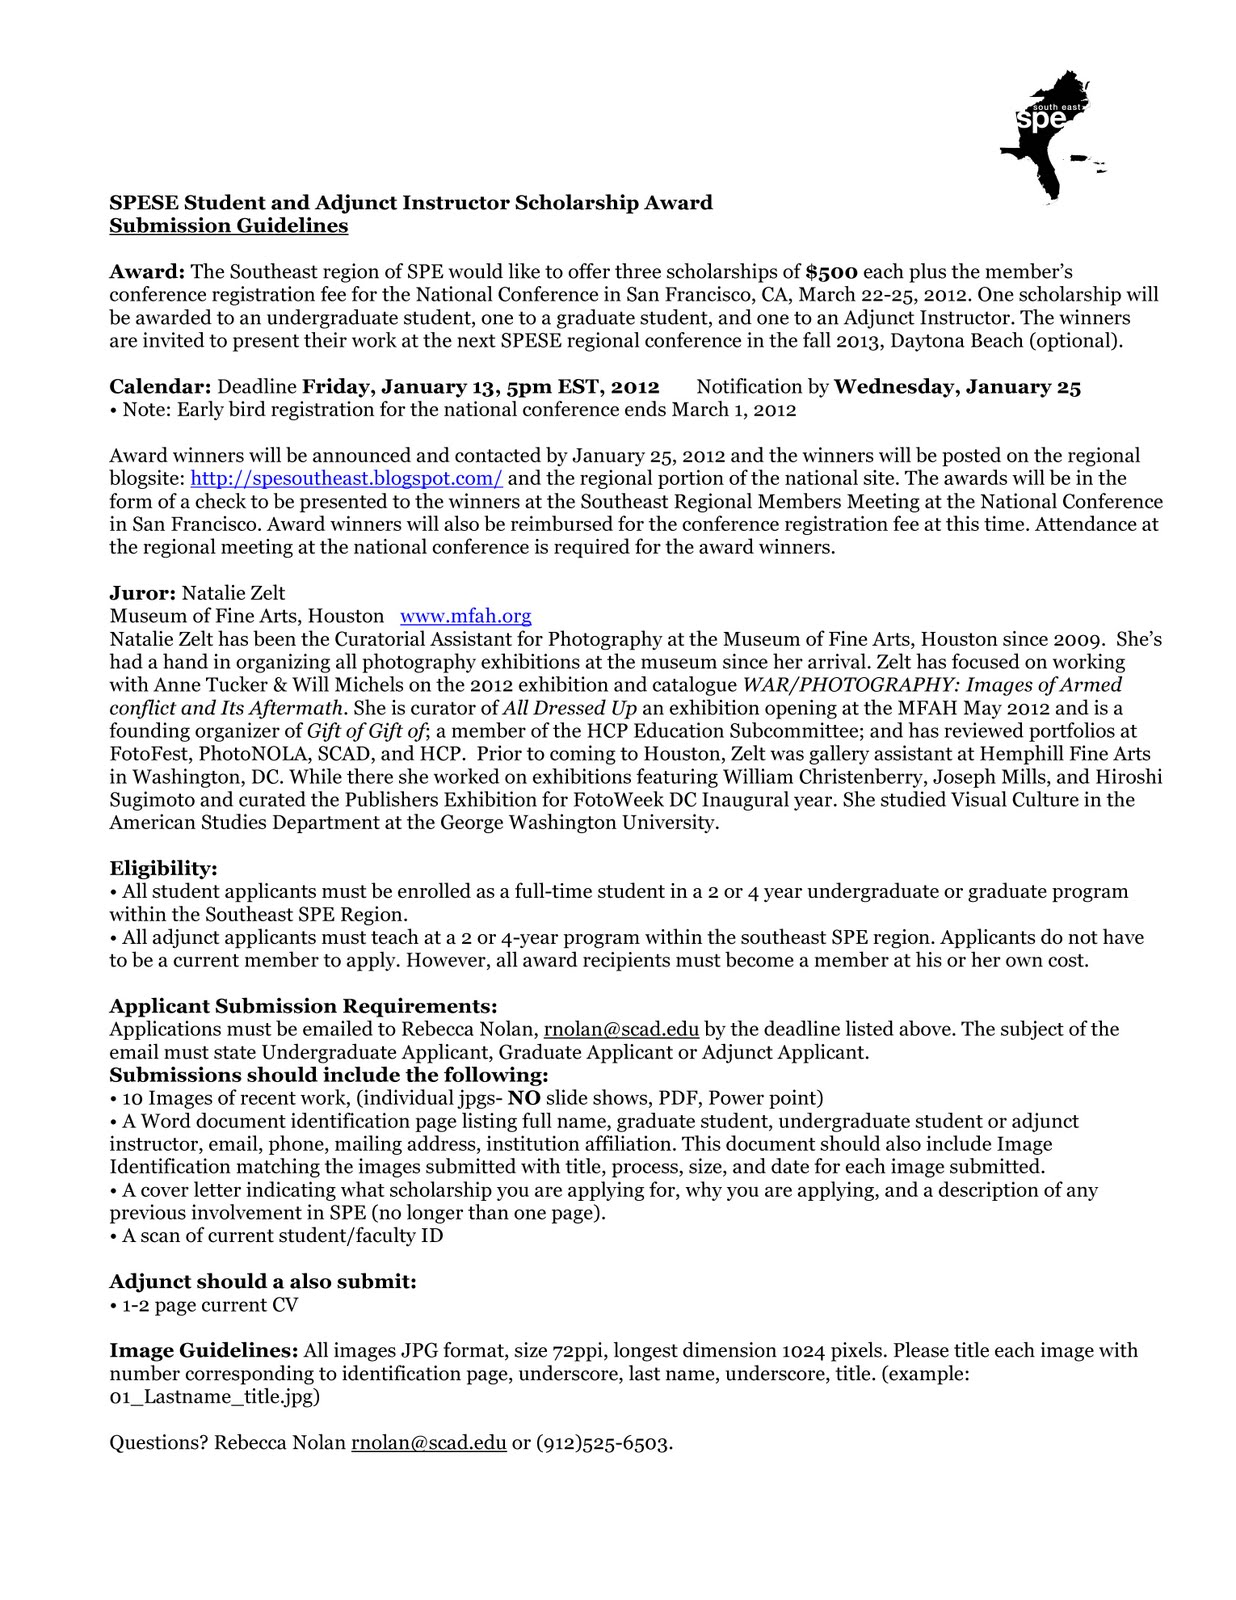 how to write a letter of request for scholarship cover letter essay for scholarship consideration great gatsby themes